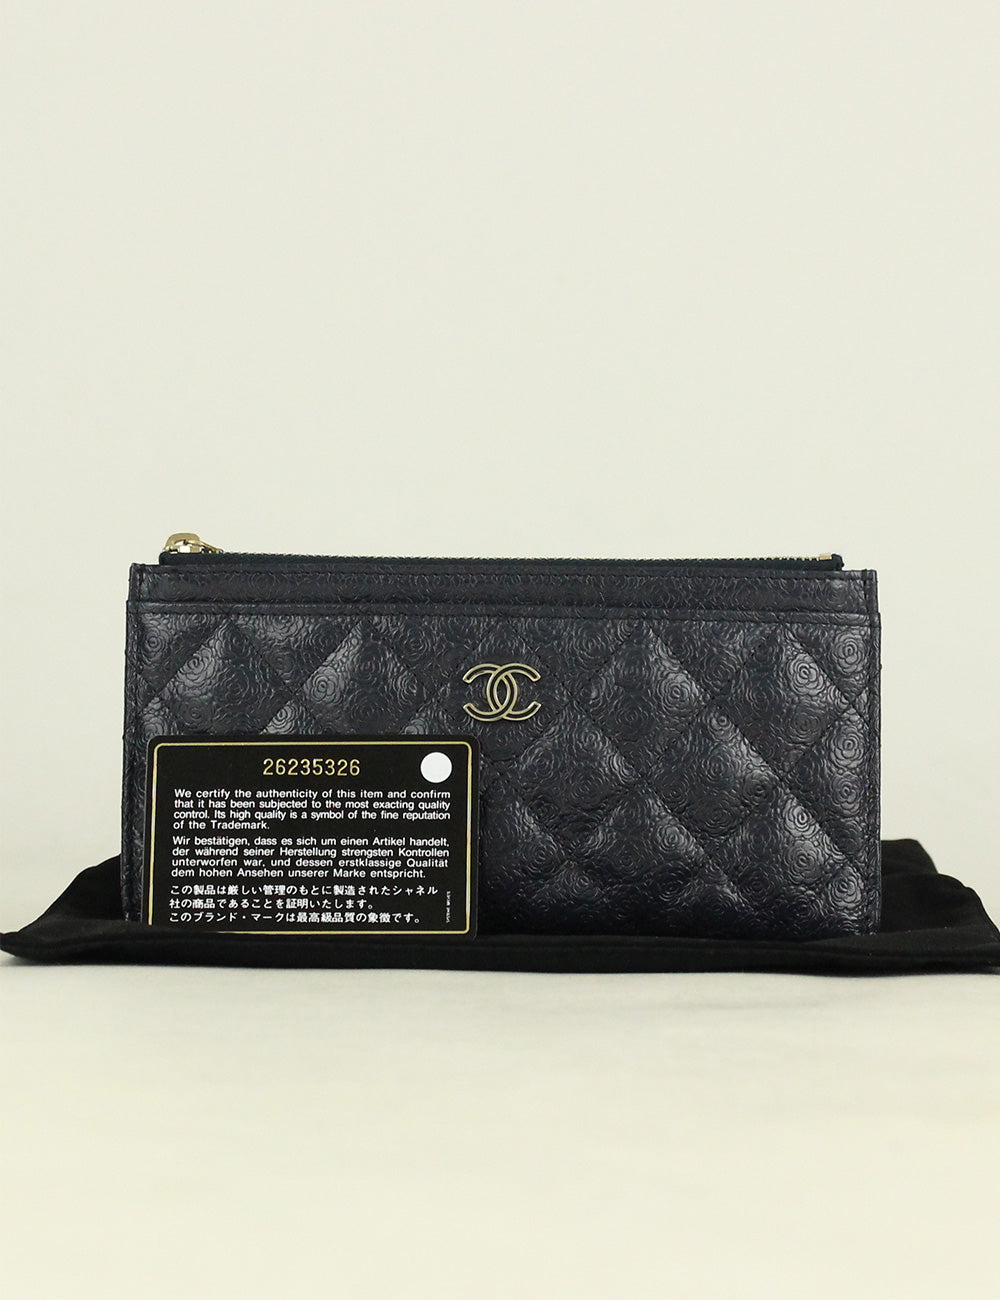 4c1c53ad1dff Chanel Camellia Long Card Holder – Brand Shop Treasures